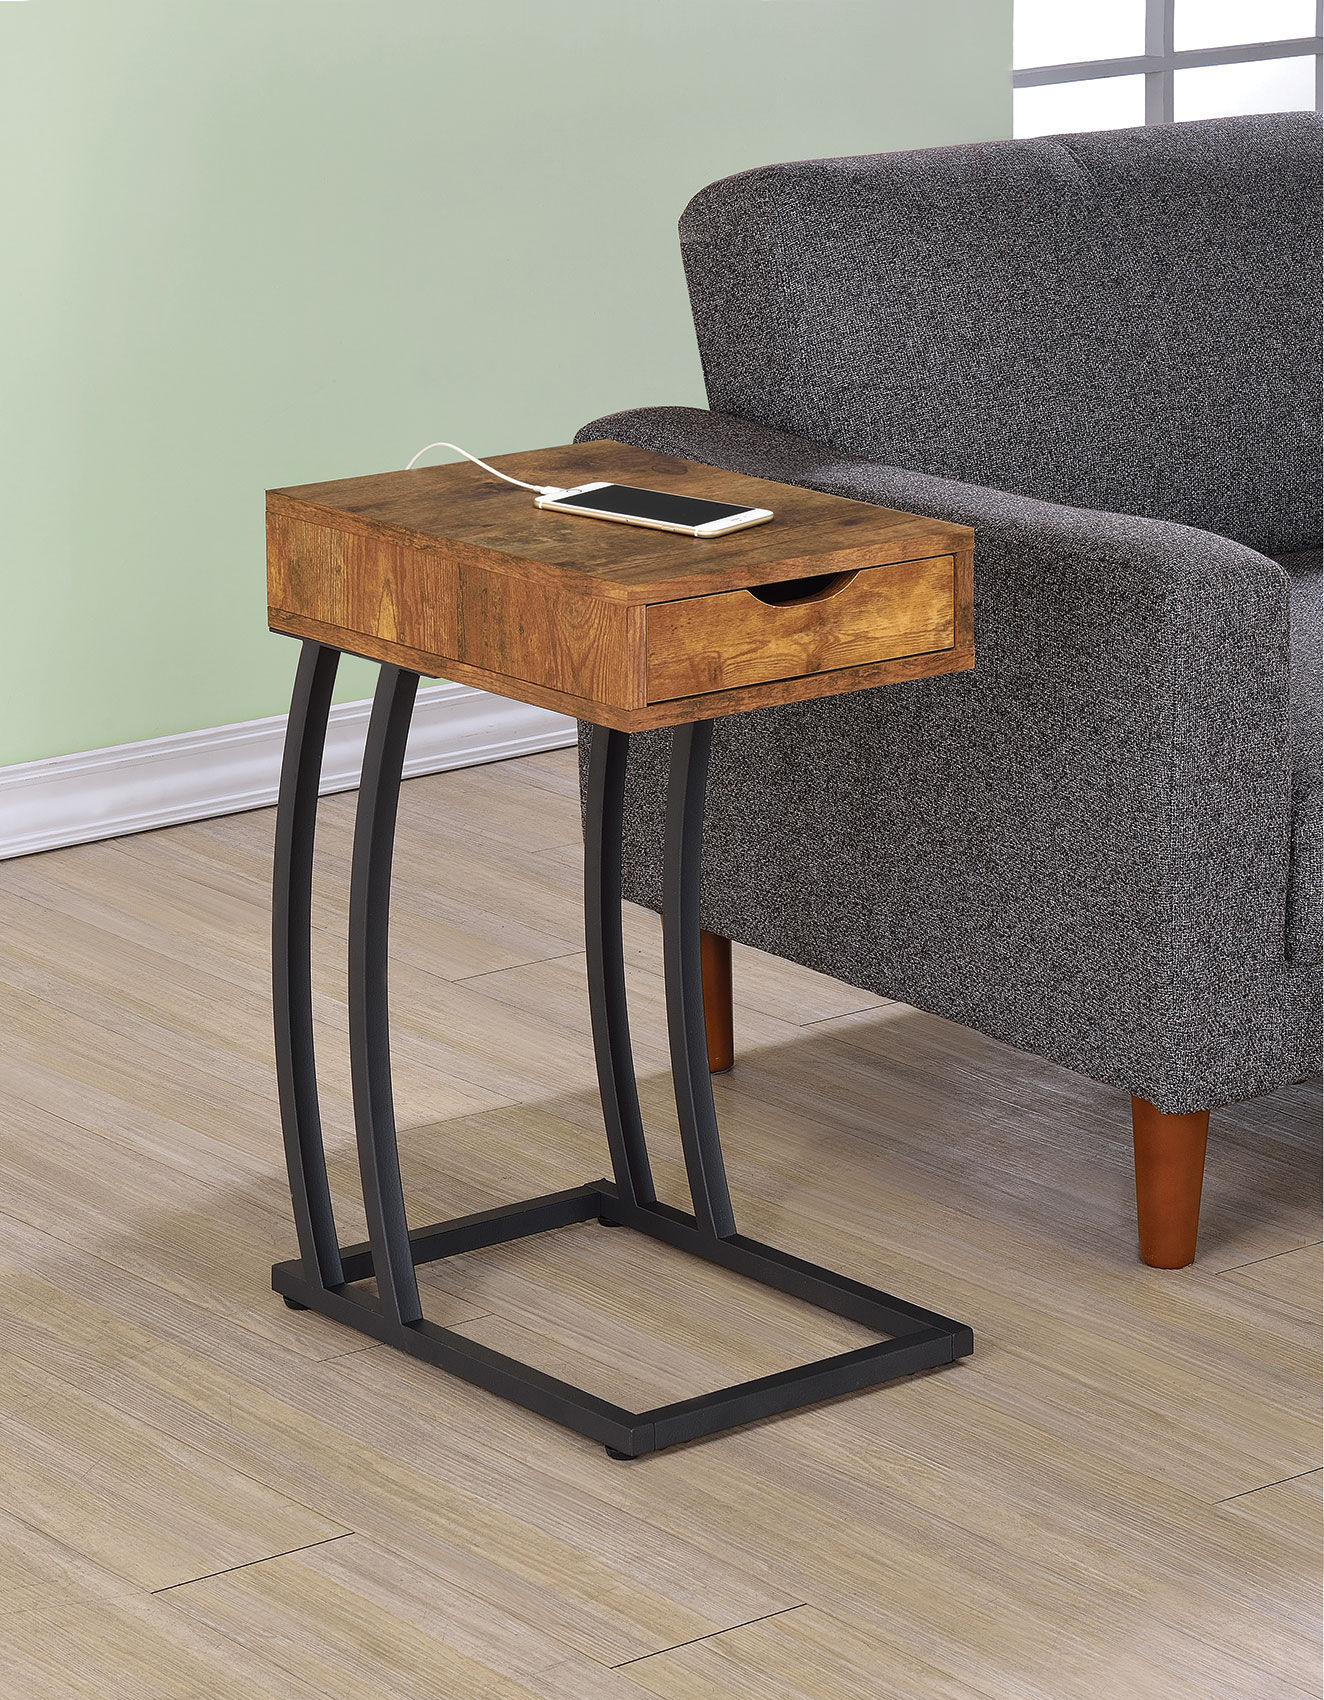 coaster furniture nutmeg accent table with power strip the classy home cst nesting set pottery barn dining room chairs high kitchen and stools black white patio umbrella espresso